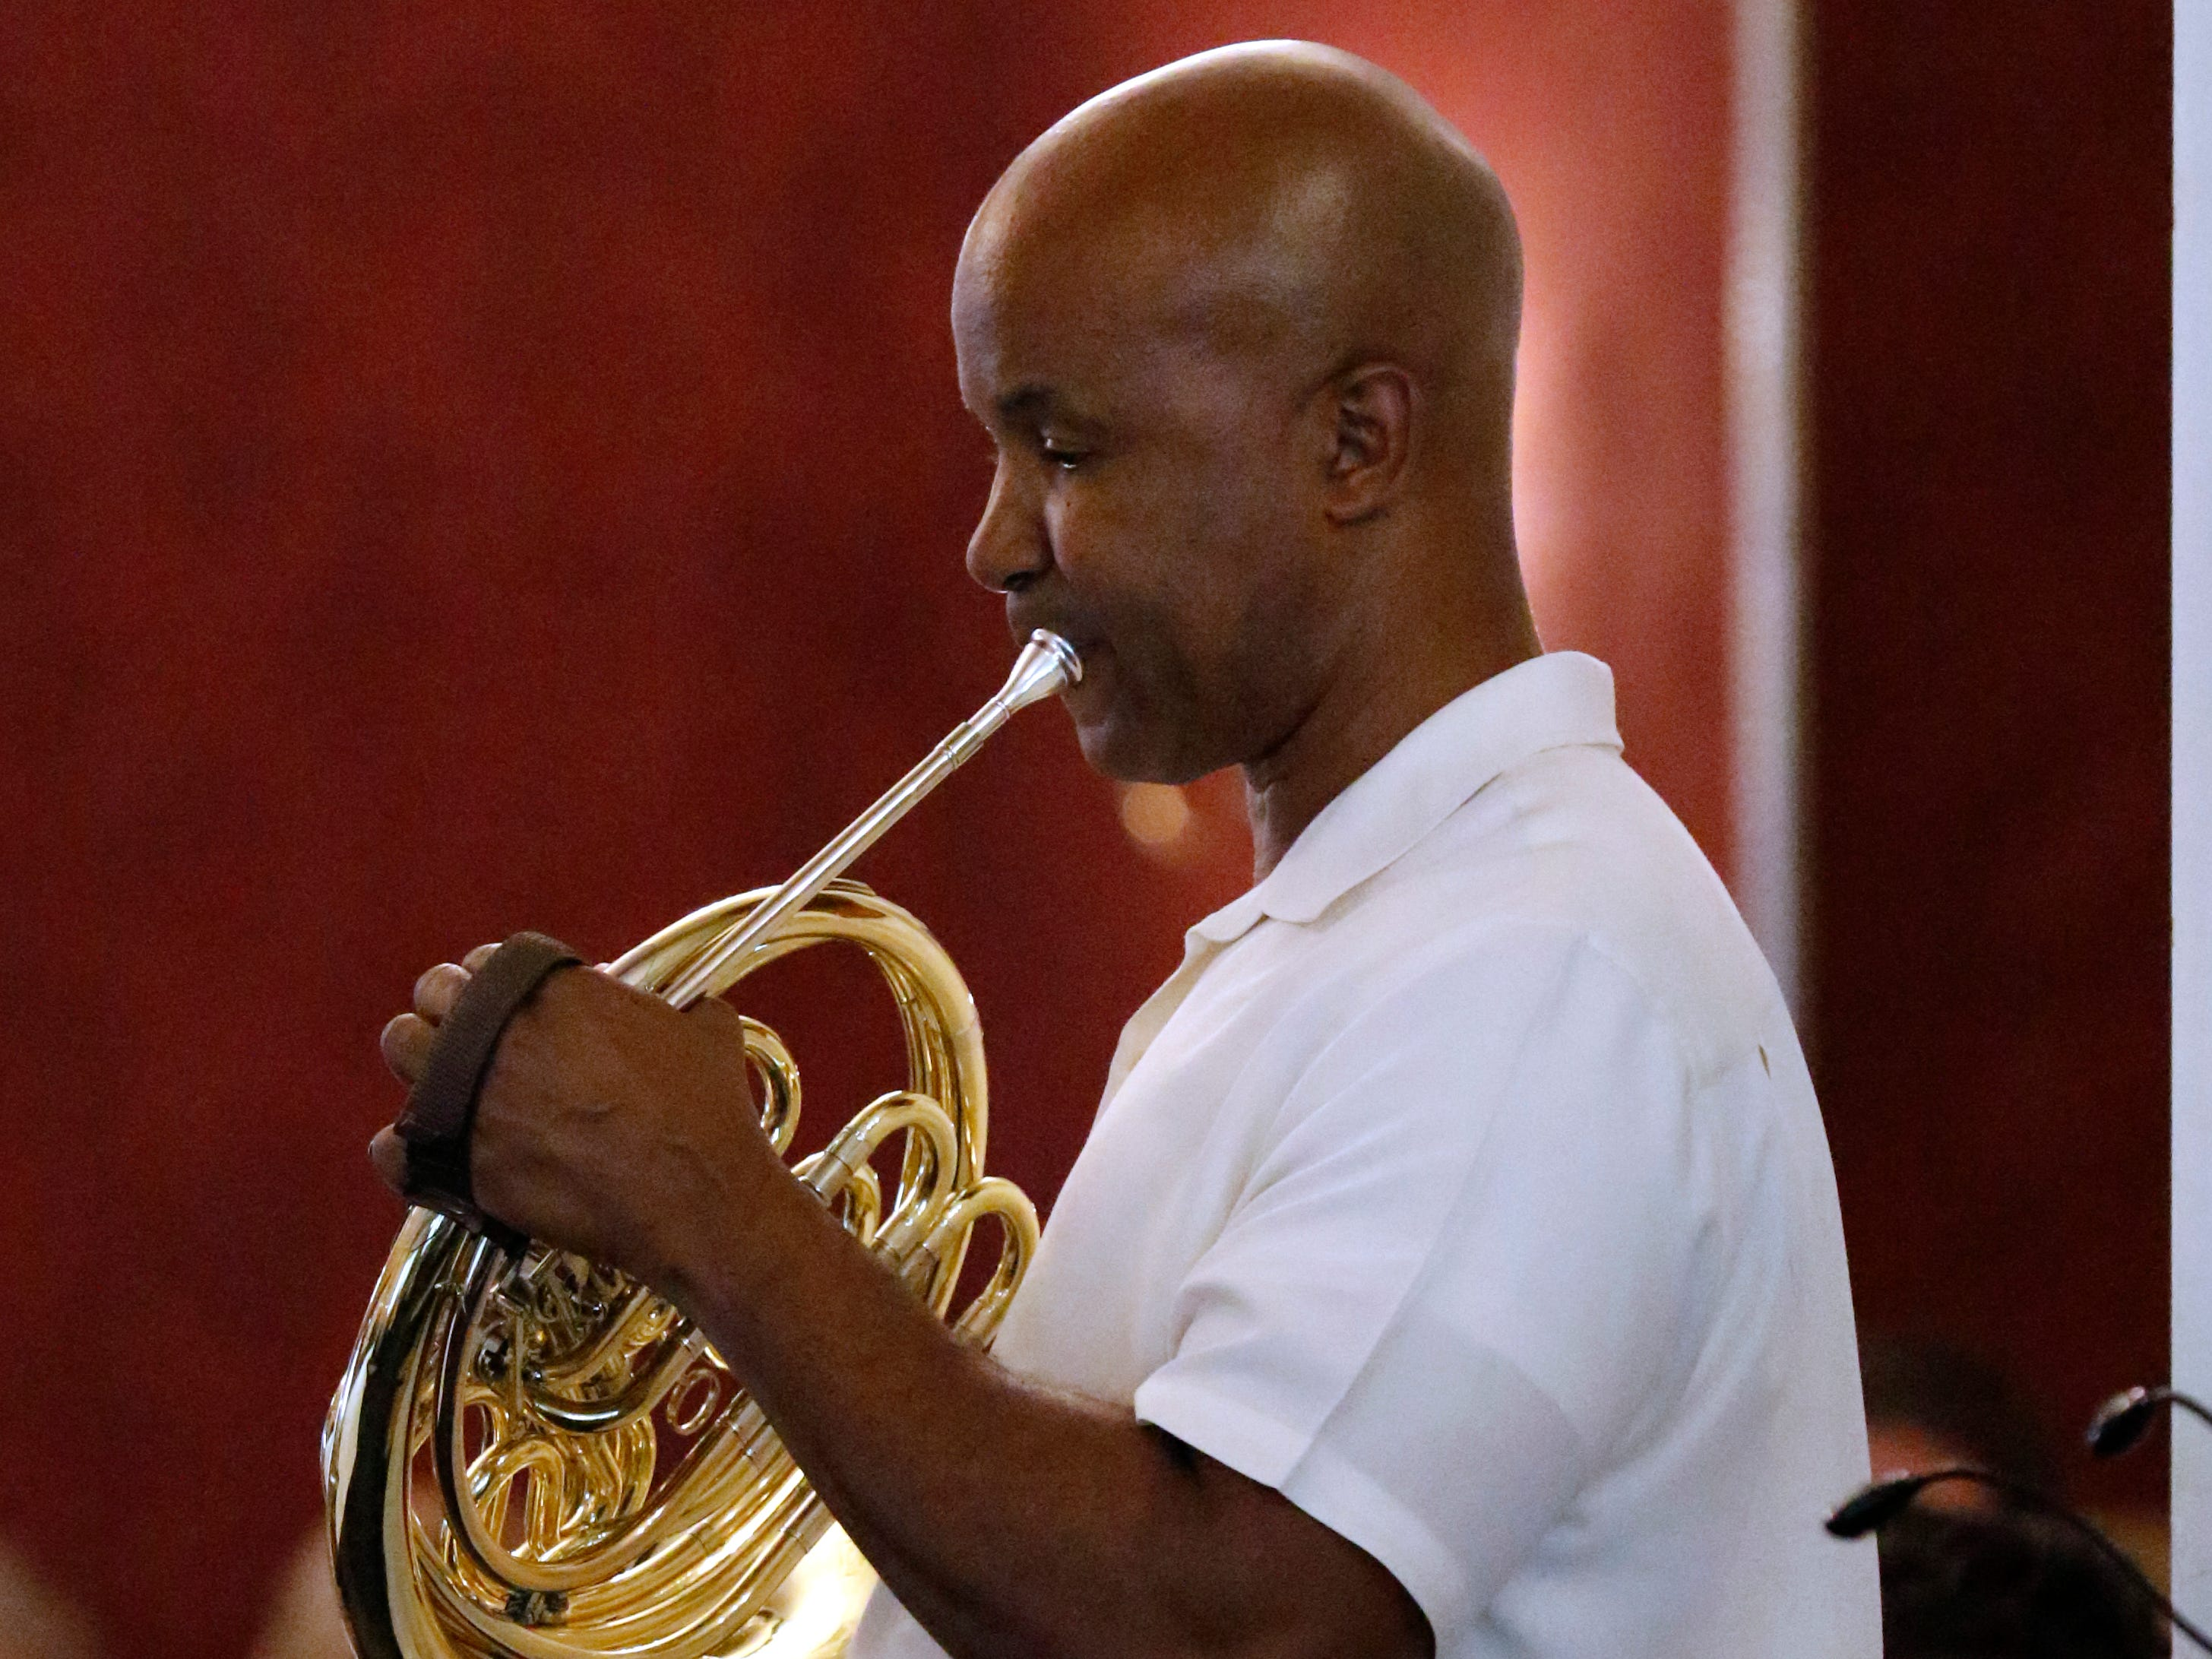 Joseph Lovinsky performs Friday afternoon, July 27, 2018, during a Lancaster Festival Cafe Concert at the Lancaster Country Club in Hocking Township. The concert featured principal members from different sections of the Lancaster Festival Orchestra.